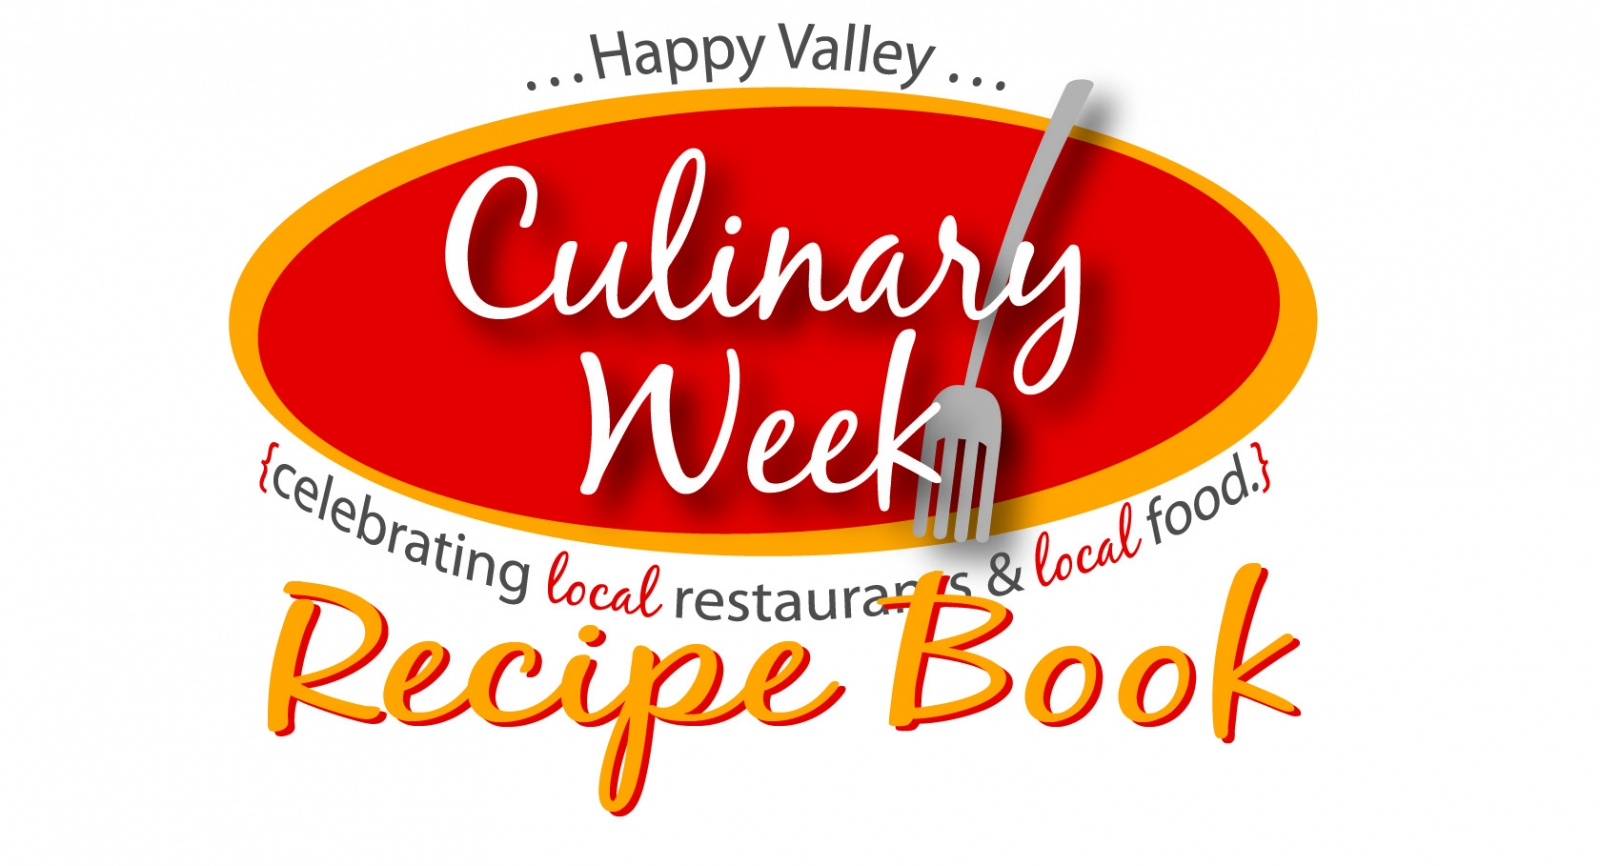 Happy Valley Culinary Week Recipes